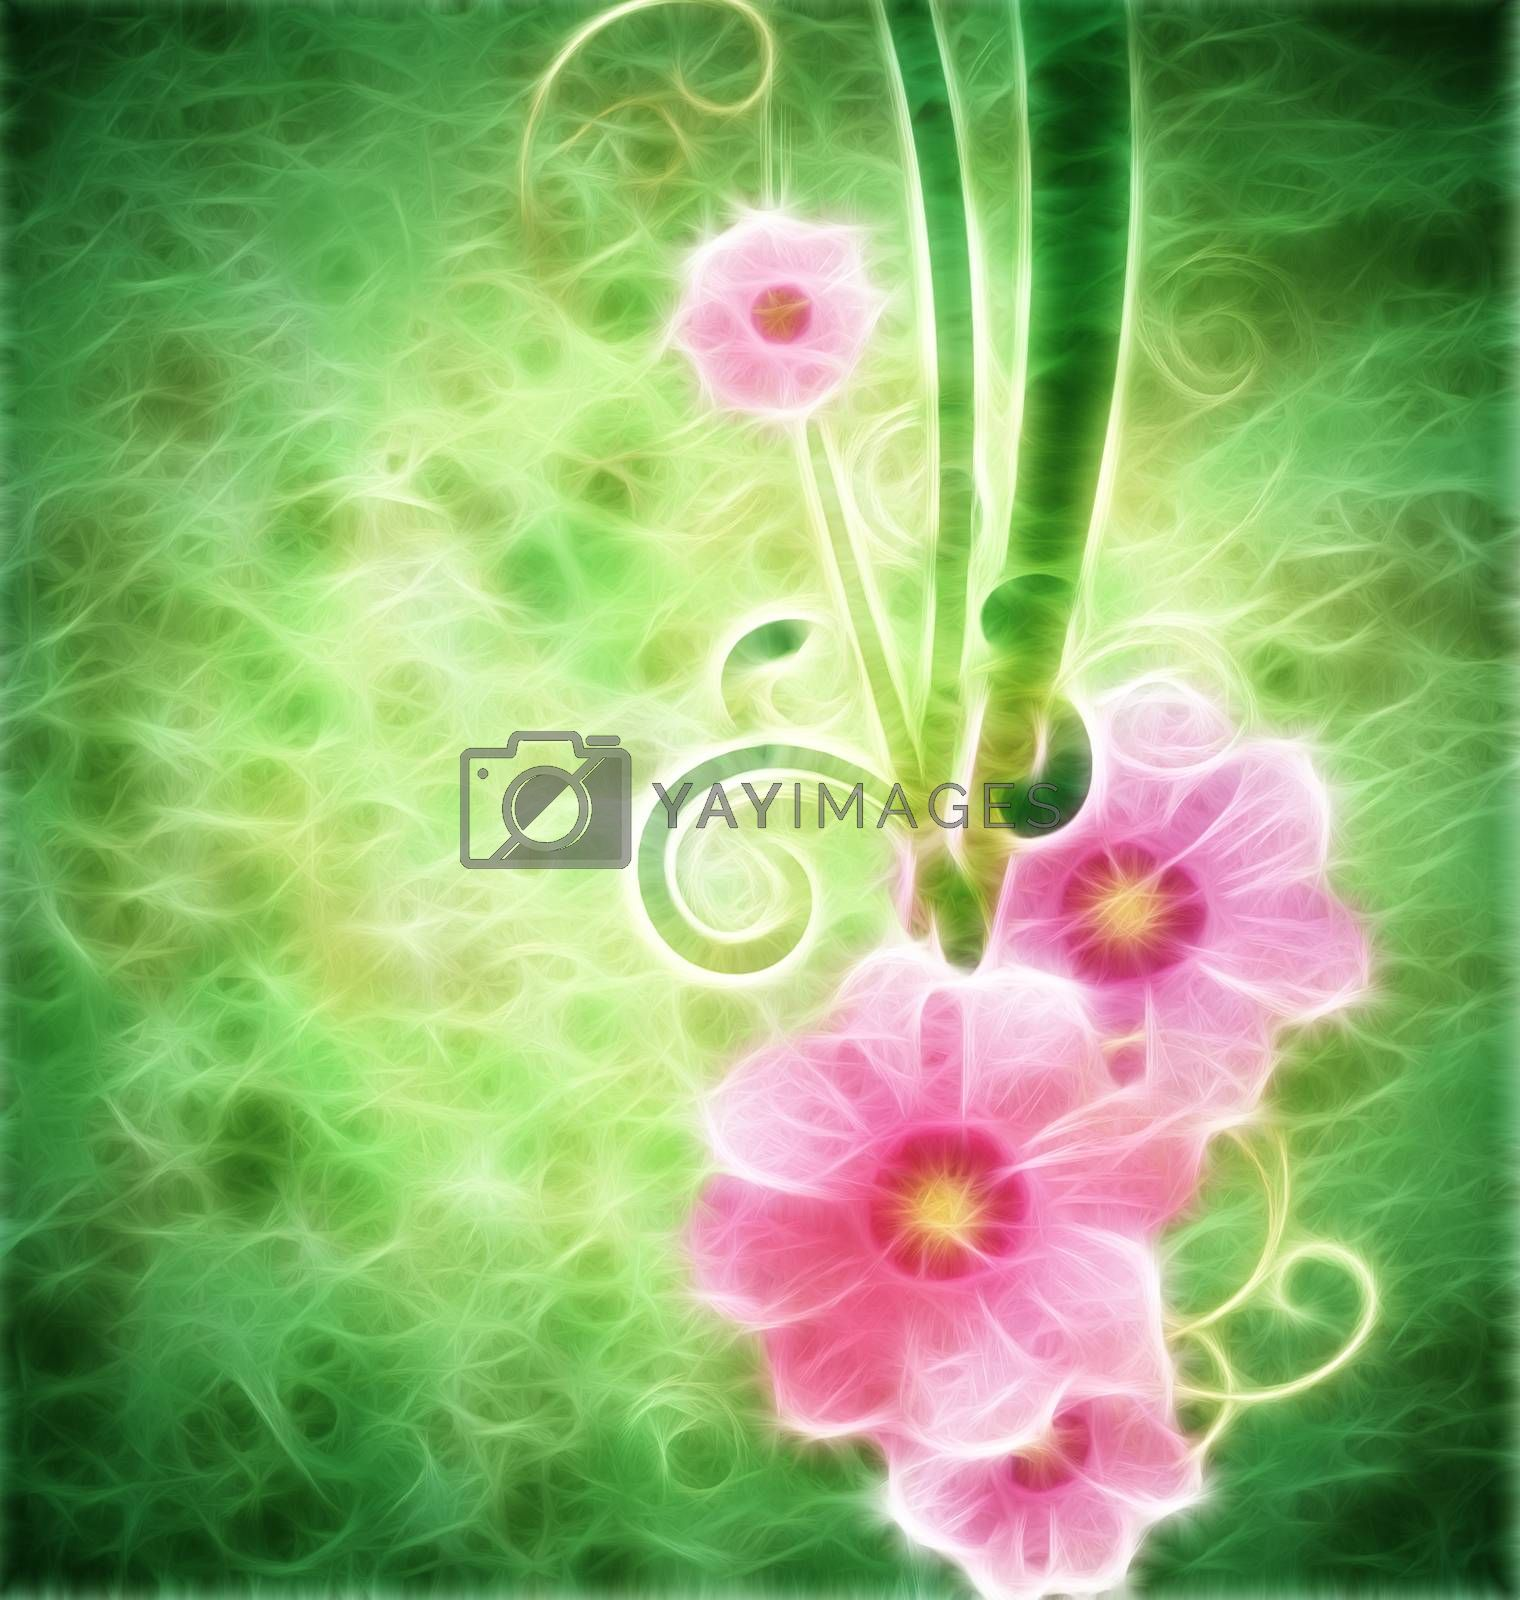 Royalty free image of grunge vintage style background with pink spring flowers and gre by CherJu